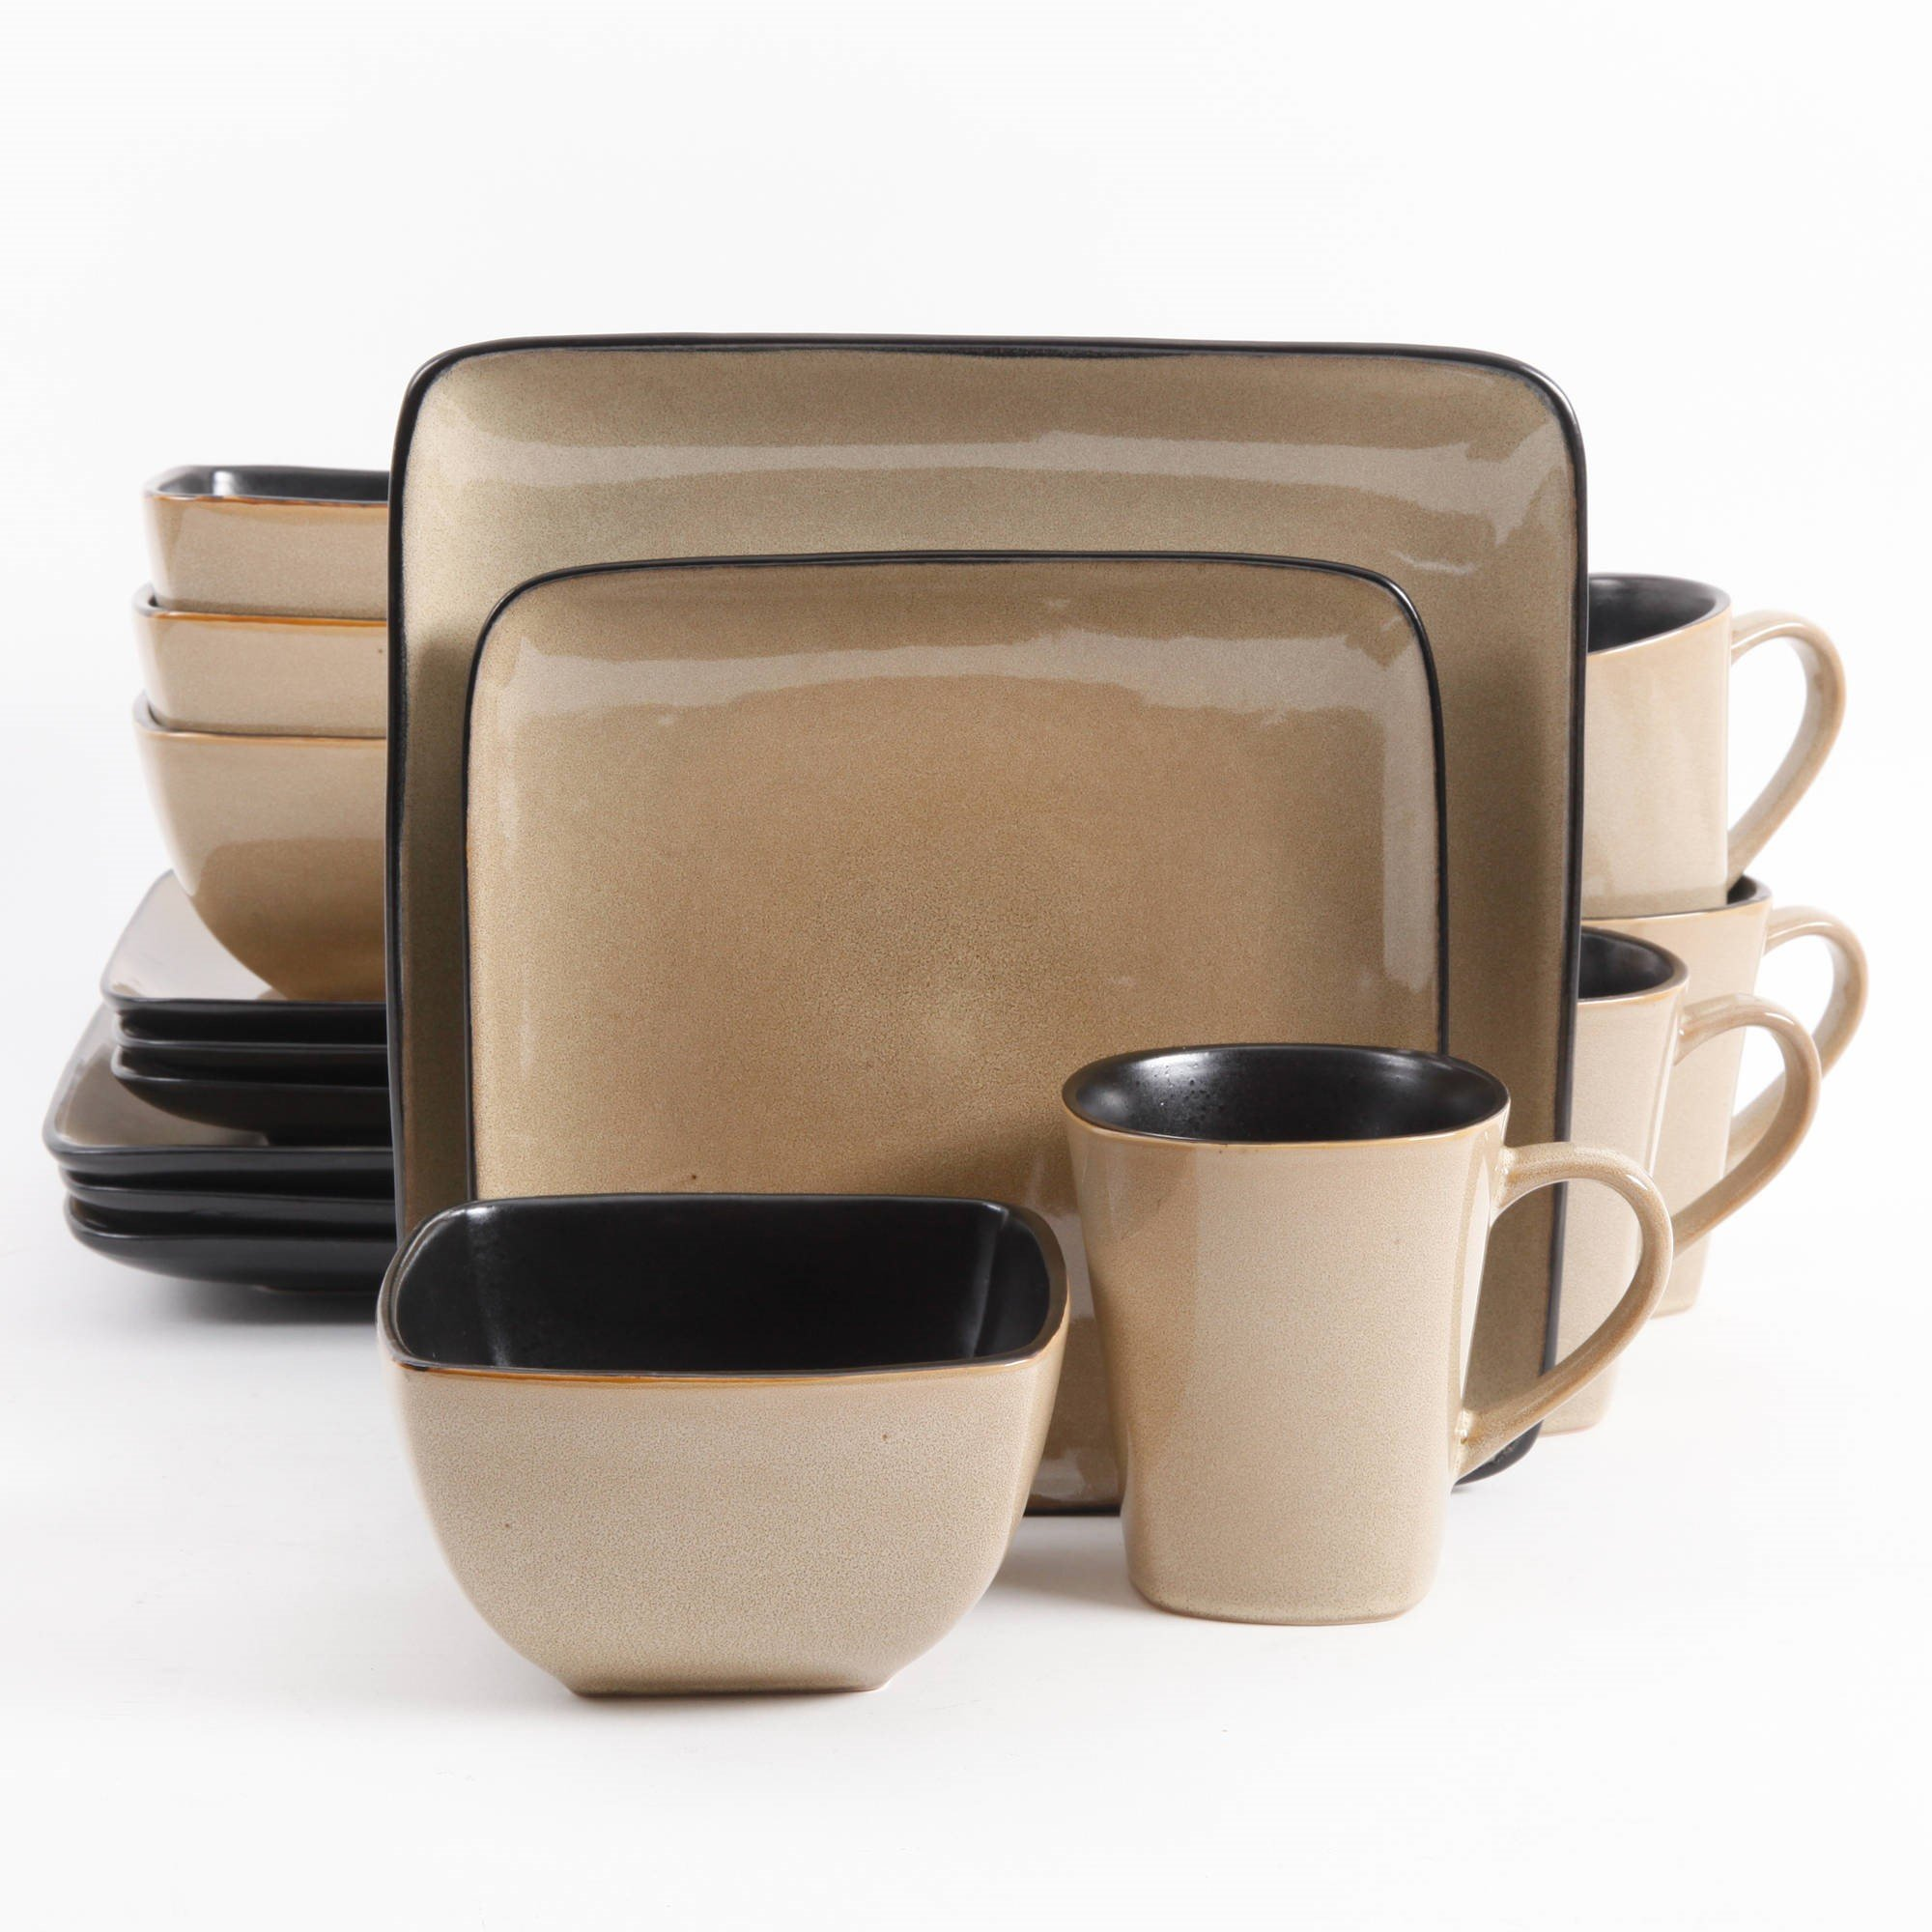 Gibson Everyday Rave Square 16-Piece Dinnerware Set, Taupe by Gibson